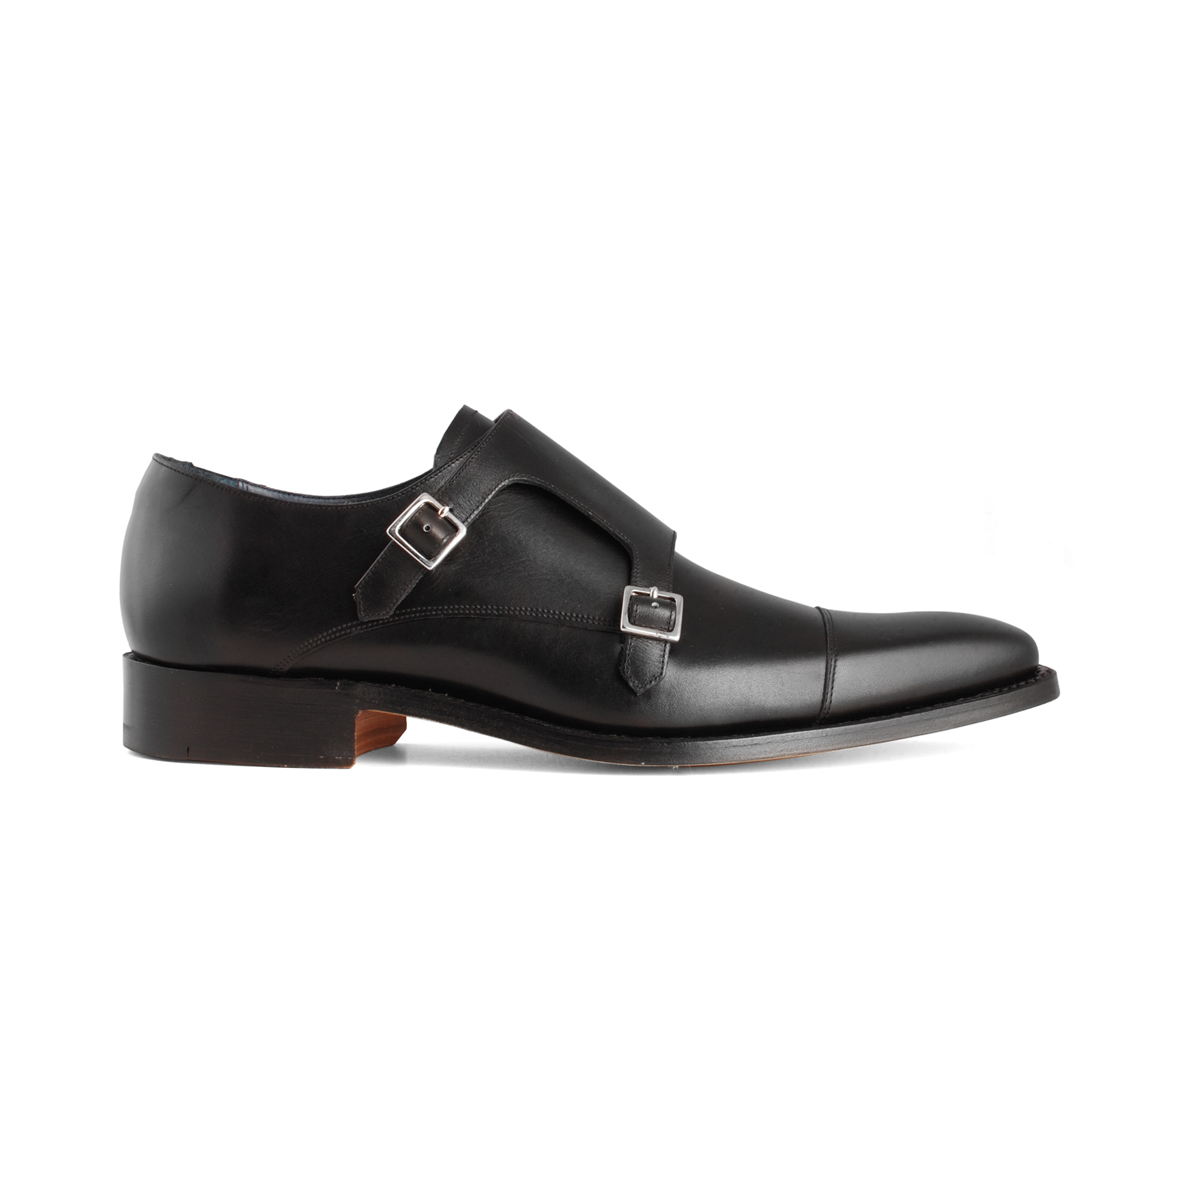 Barker Tunstall Black shoes